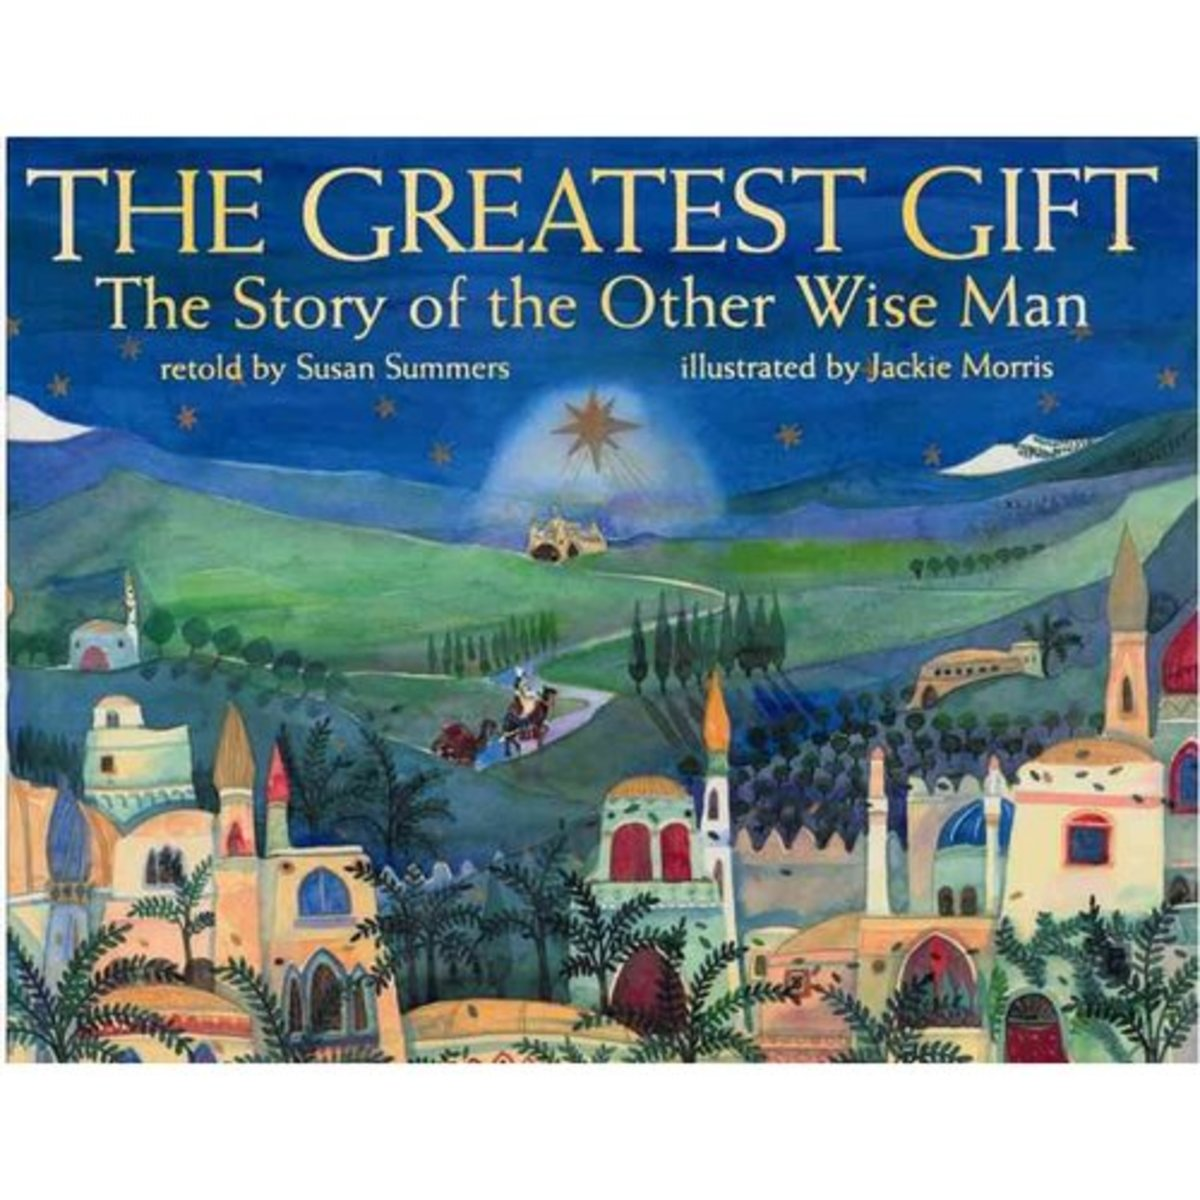 The Greatest Gift: The Story of the Other Wise Man was originally published under the title The Fourth Wise Man. This artistically rendered picture book is an adaptation of the well known book, the Story of the Other Wise Man by Henry Van Dyke.